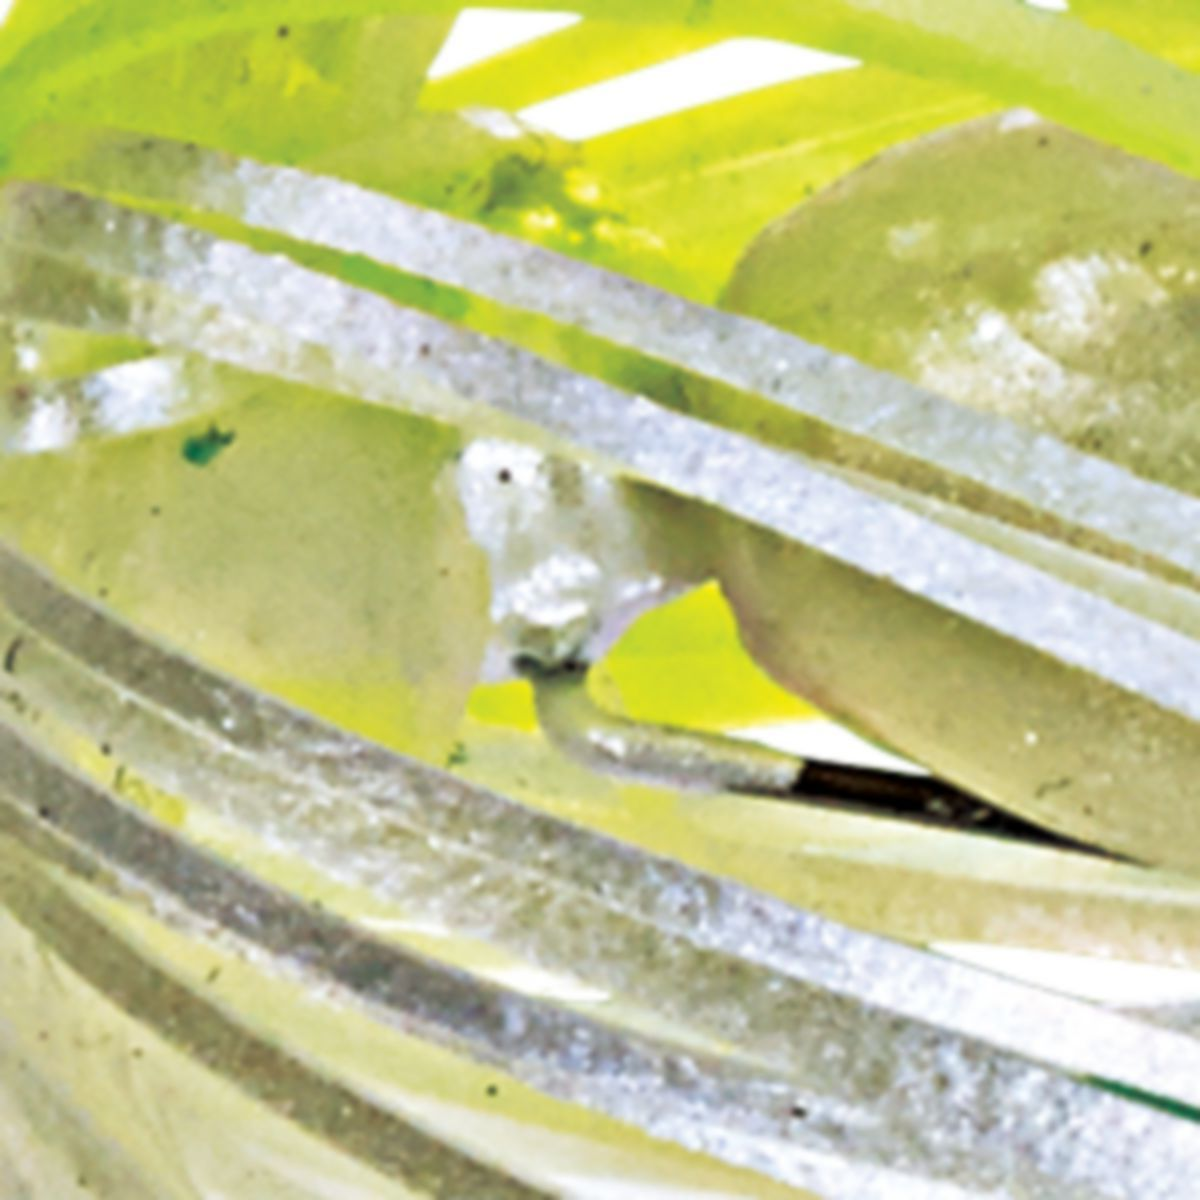 Cabela's Go-To Willow Willow Spinner-Shad